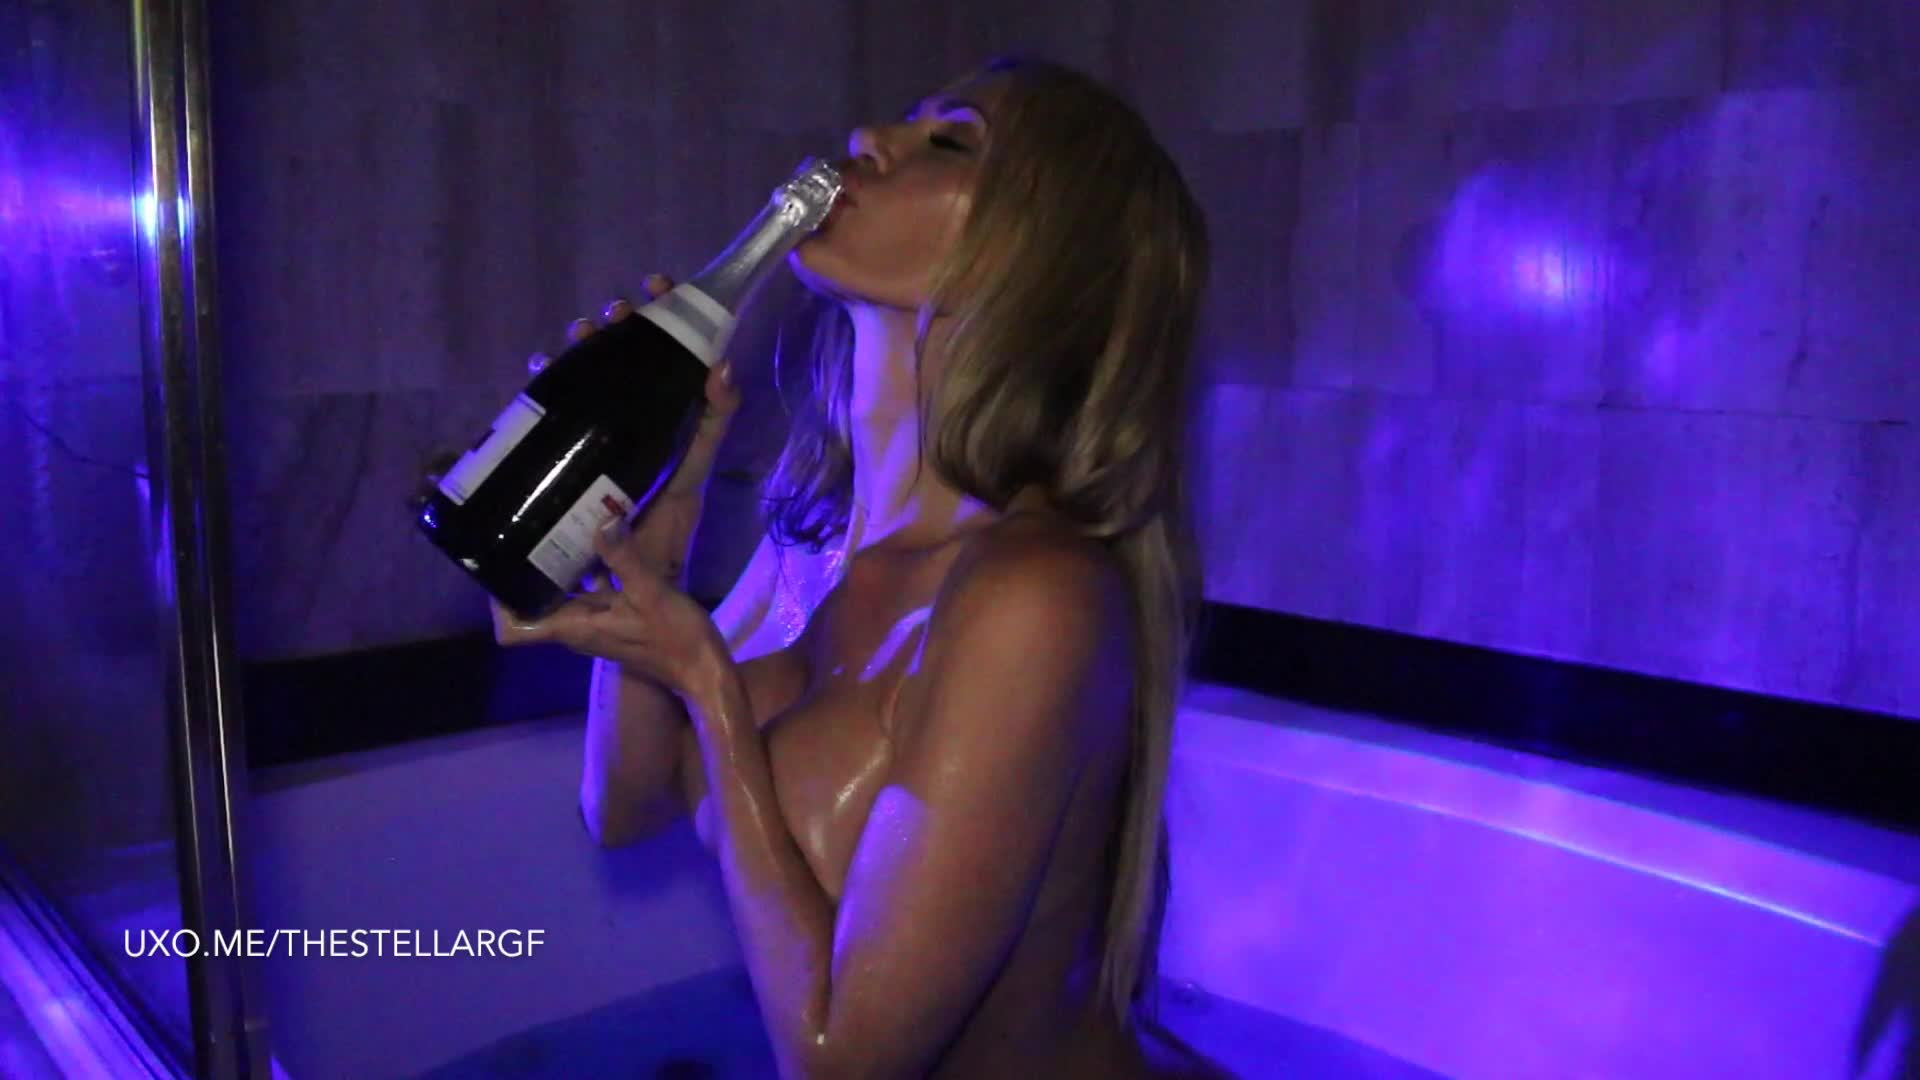 """""""TheStellarGF"""" (Live Cams, Champagne Tasting, Dildo Fucking, Dildo Sucking, Wet & Messy) Champagne Showers and Blowjob Dreams - ManyVids Production"""